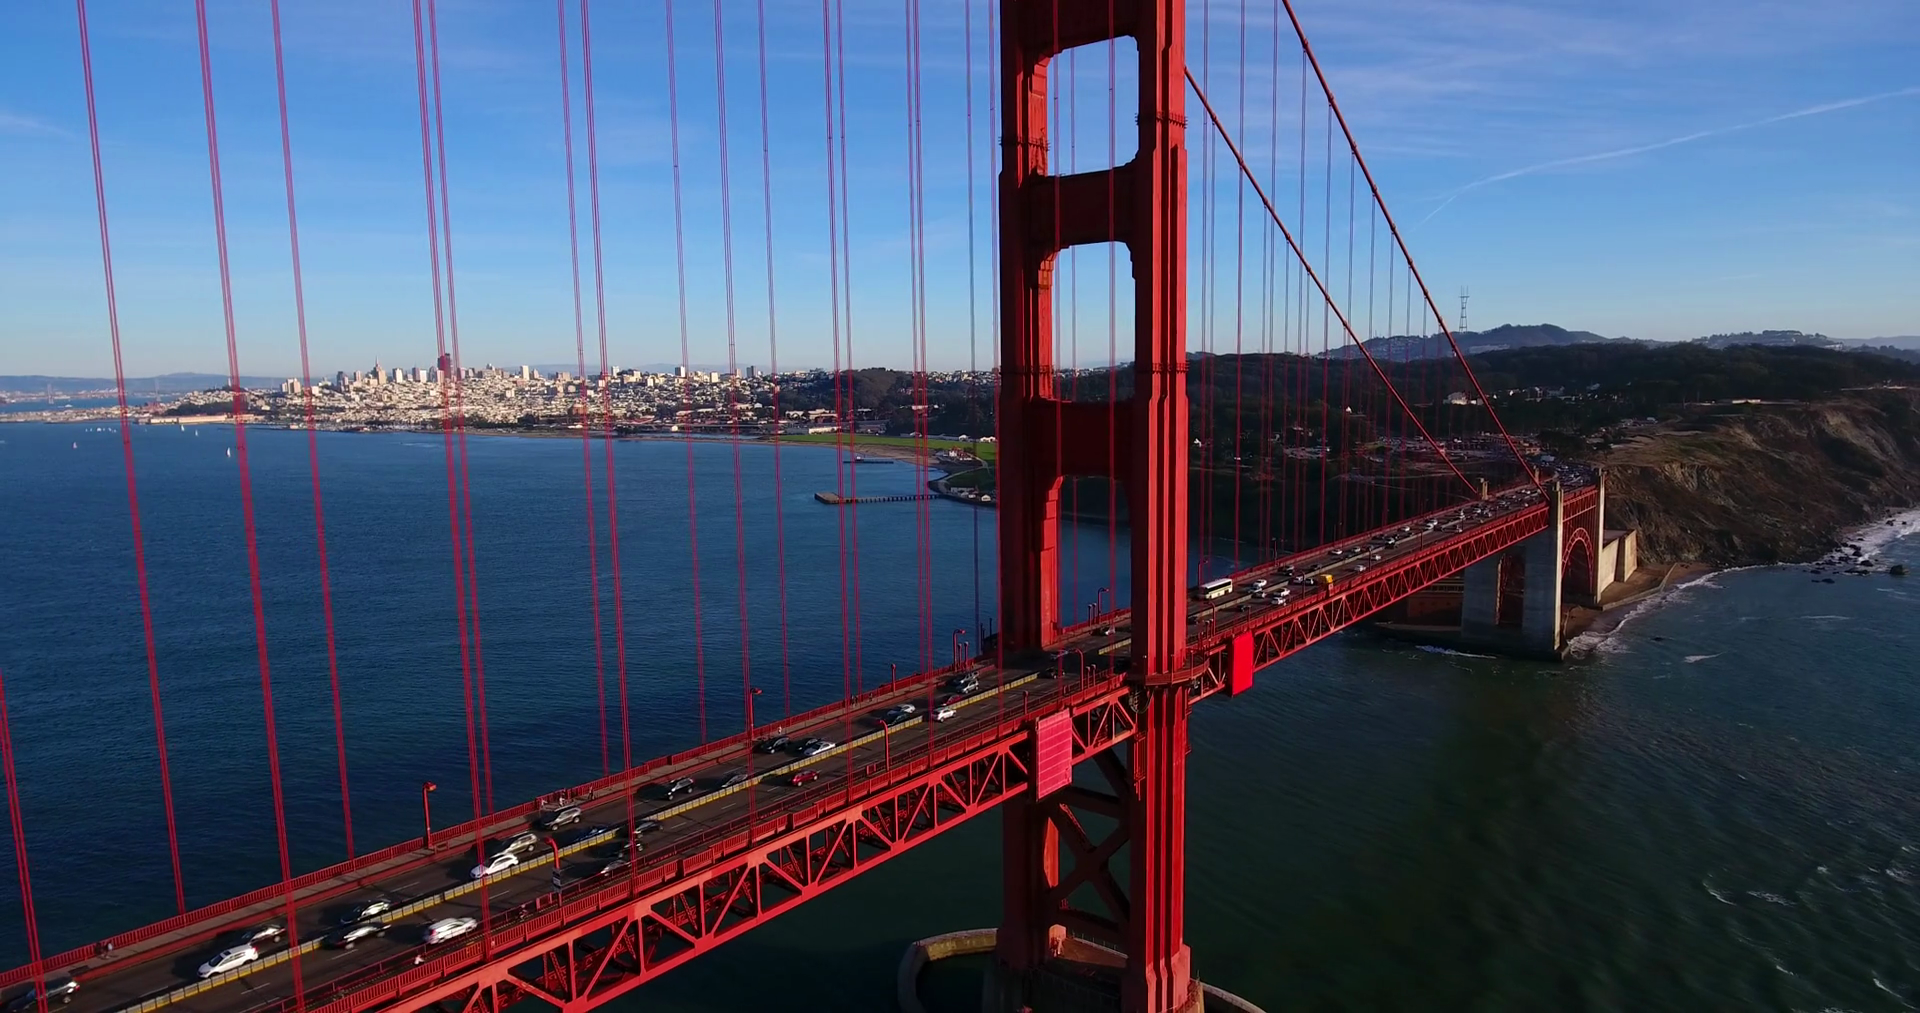 pulling-back-from-golden-gate-bridge-aerial-cars-driving-across-in-san-fran_bwlhpc7ex_thumbnail-full01.png